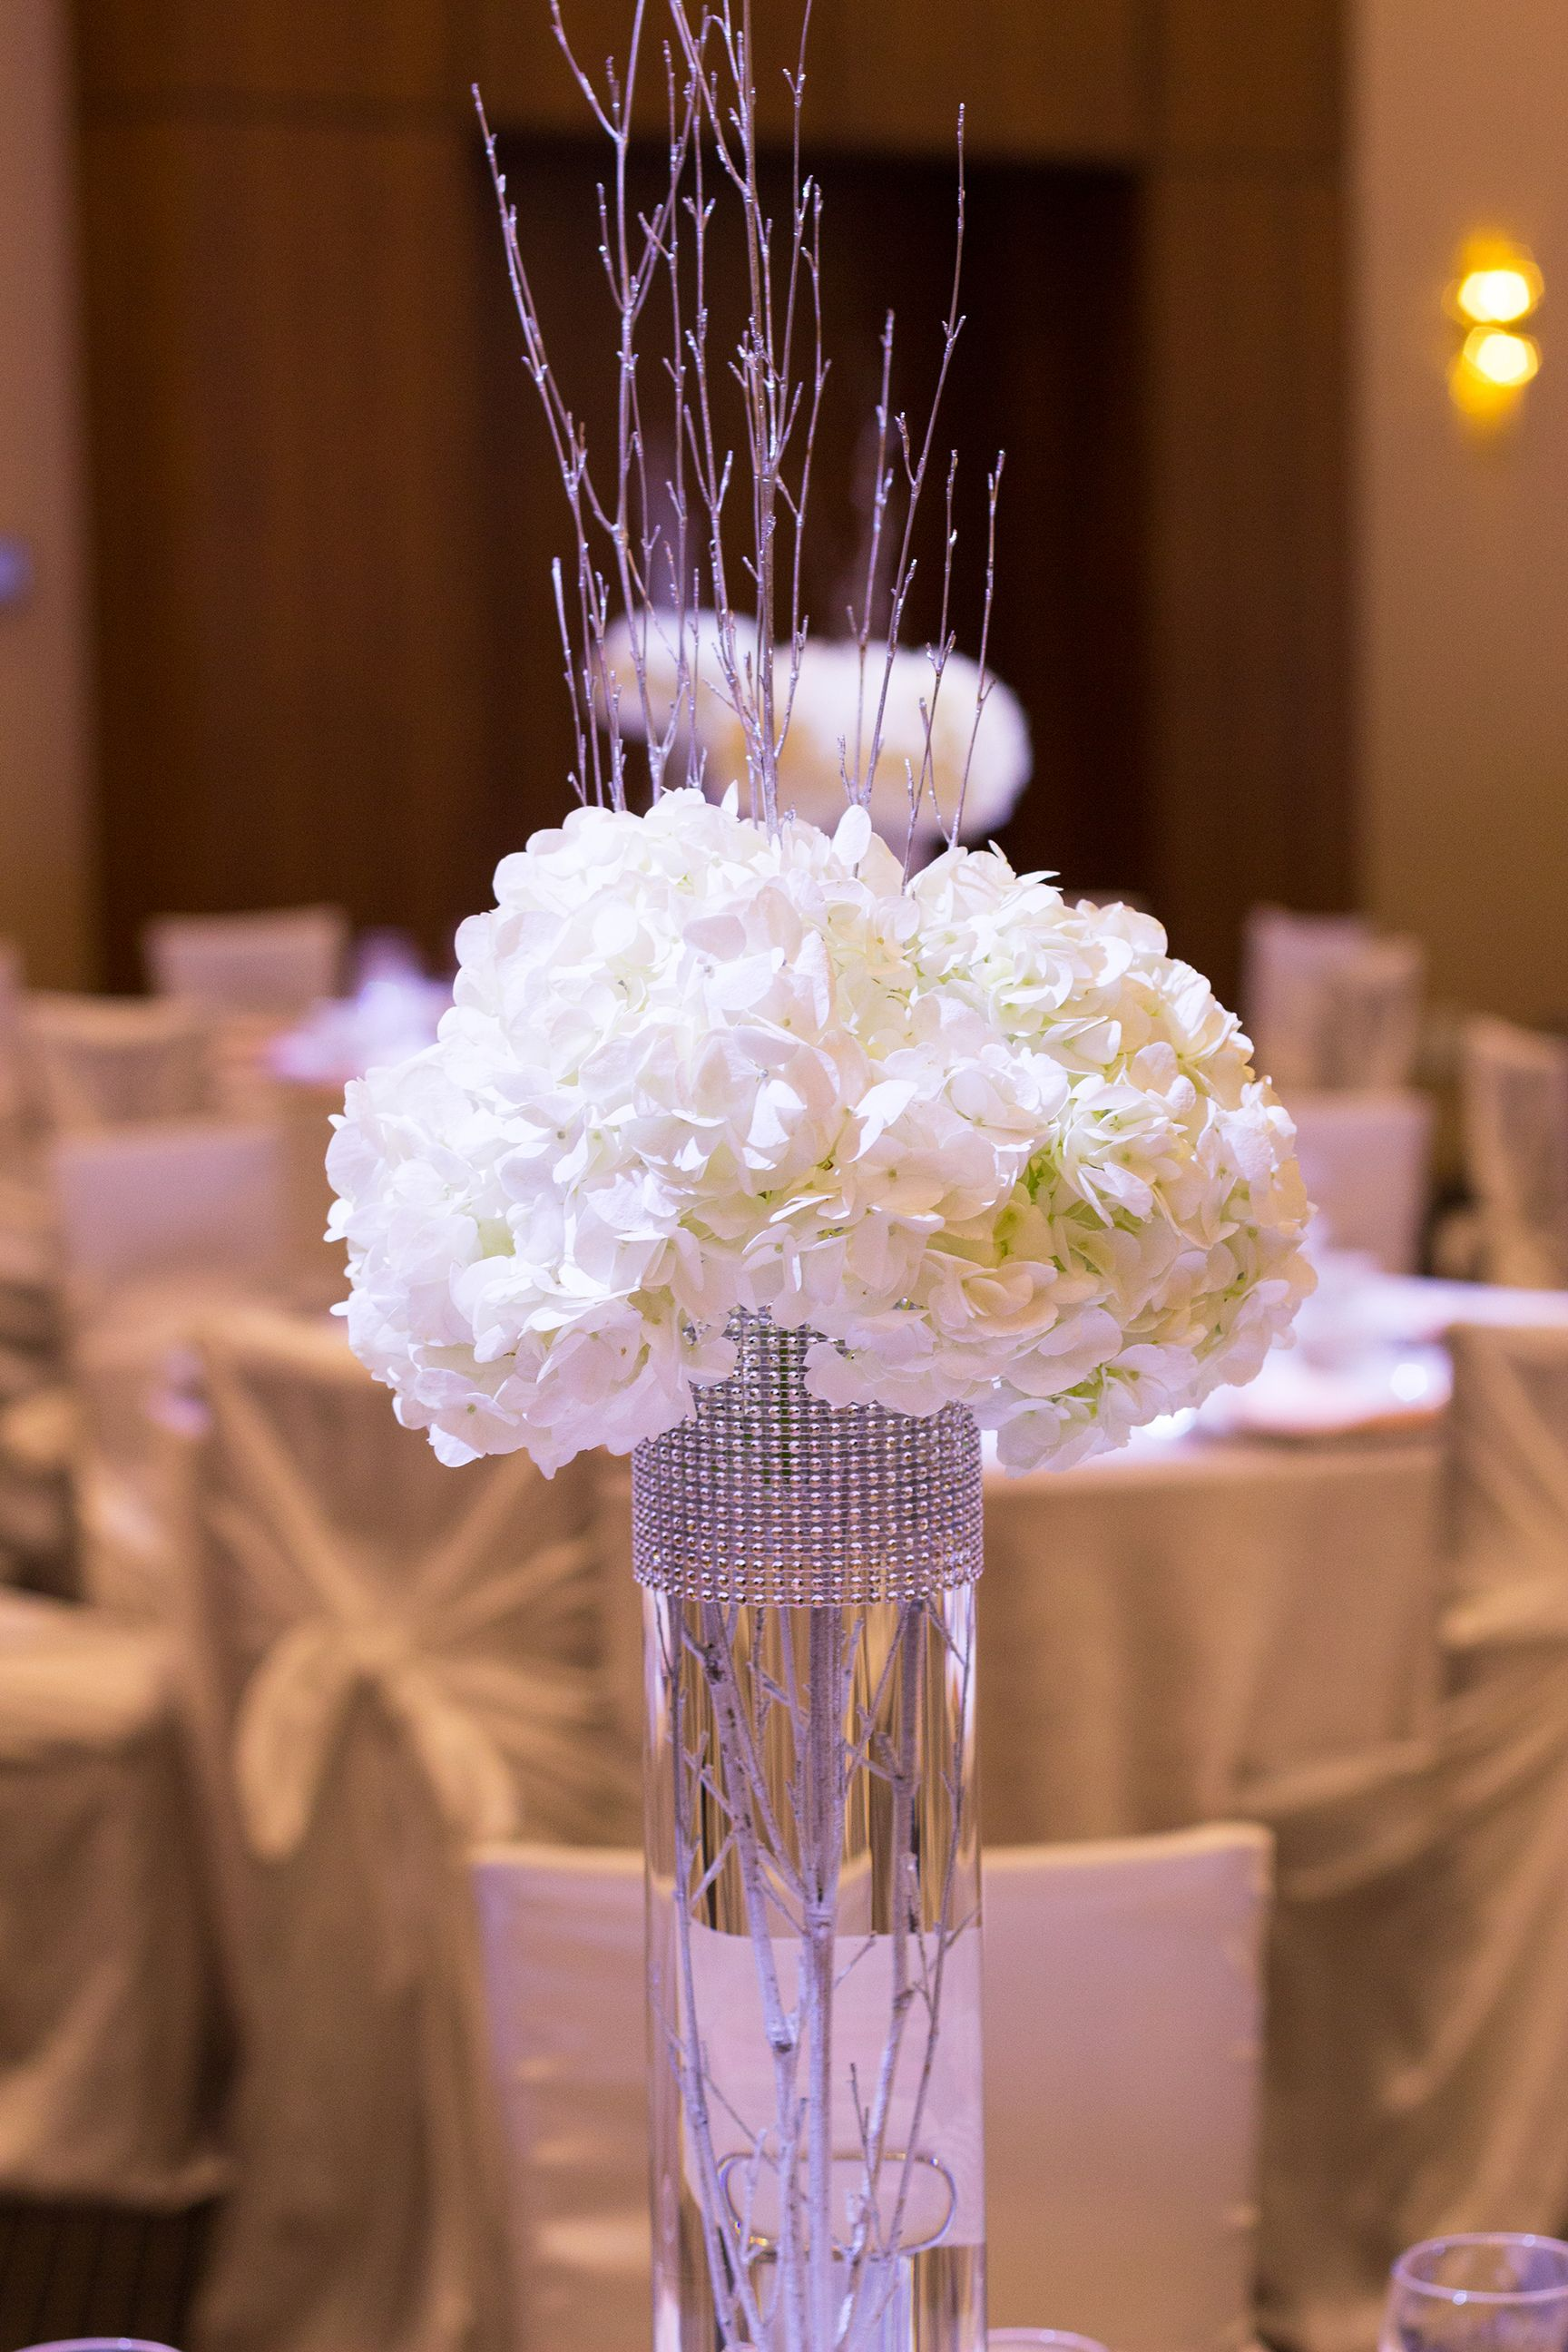 How to Make a Tall Rhinestone Centerpiece